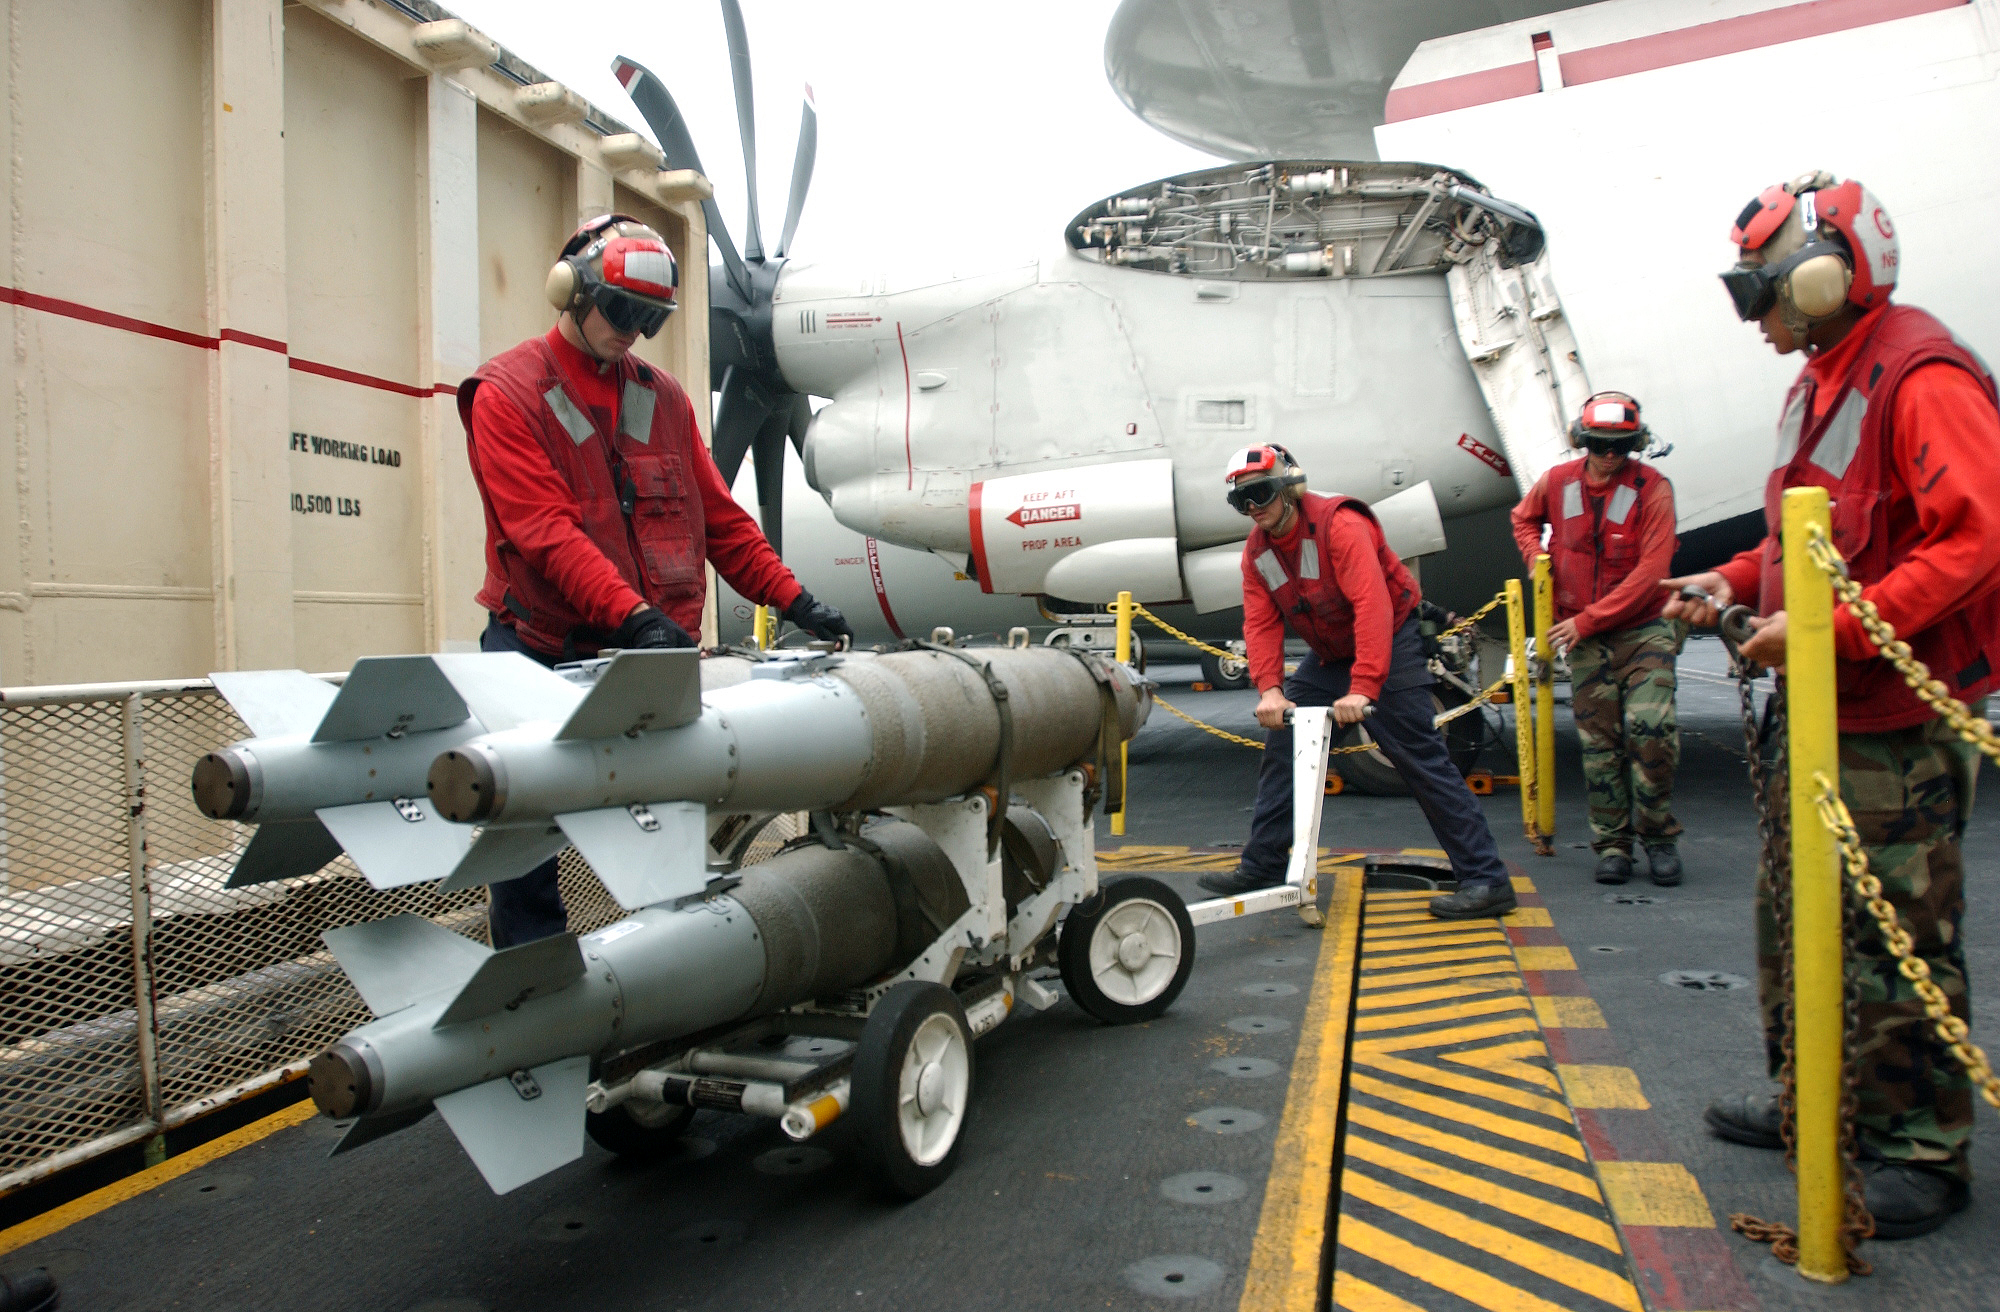 File:US Navy 051115-N-6484E-011 Aviation Ordnancemen place a weapons